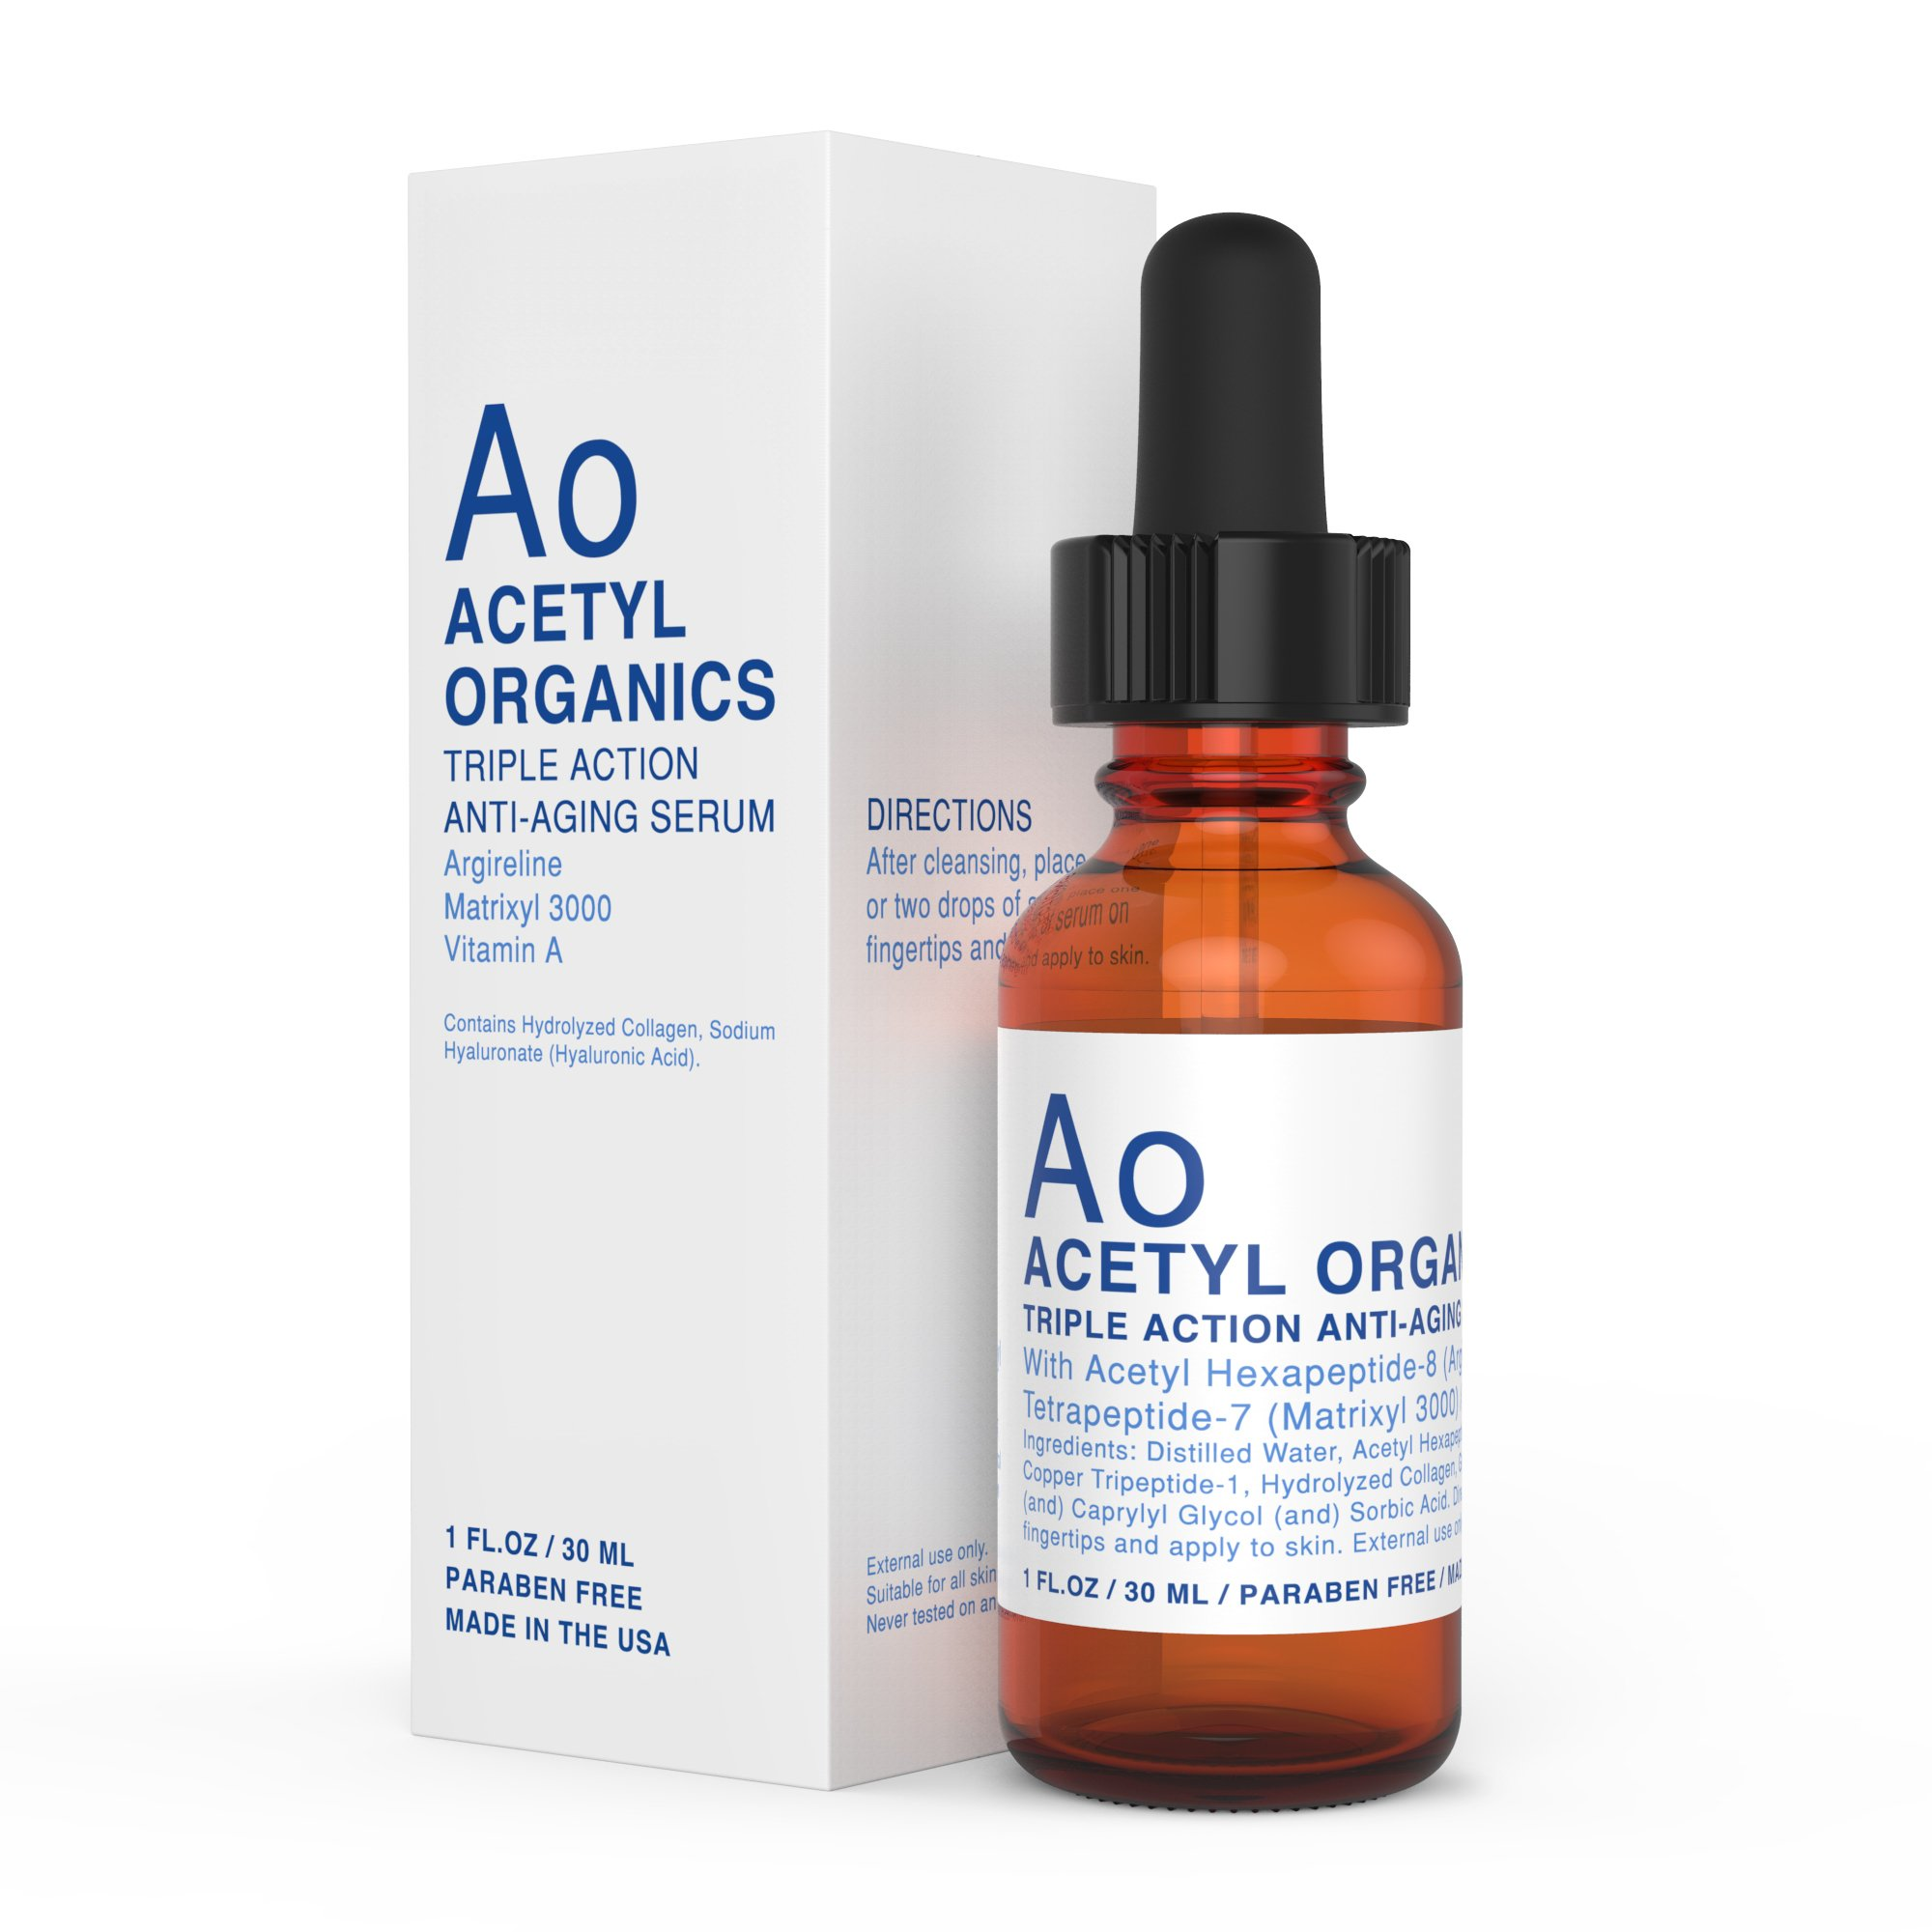 PREMIUM Anti-aging Serum with Argireline (20%), Matrixyl 3000 (20%), Retinyl Acetate (Vitamin A). Best Argireline Serum / Cream For Eyes, Wrinkles. Hyaluronic Acid. 100% Risk Free Offer.